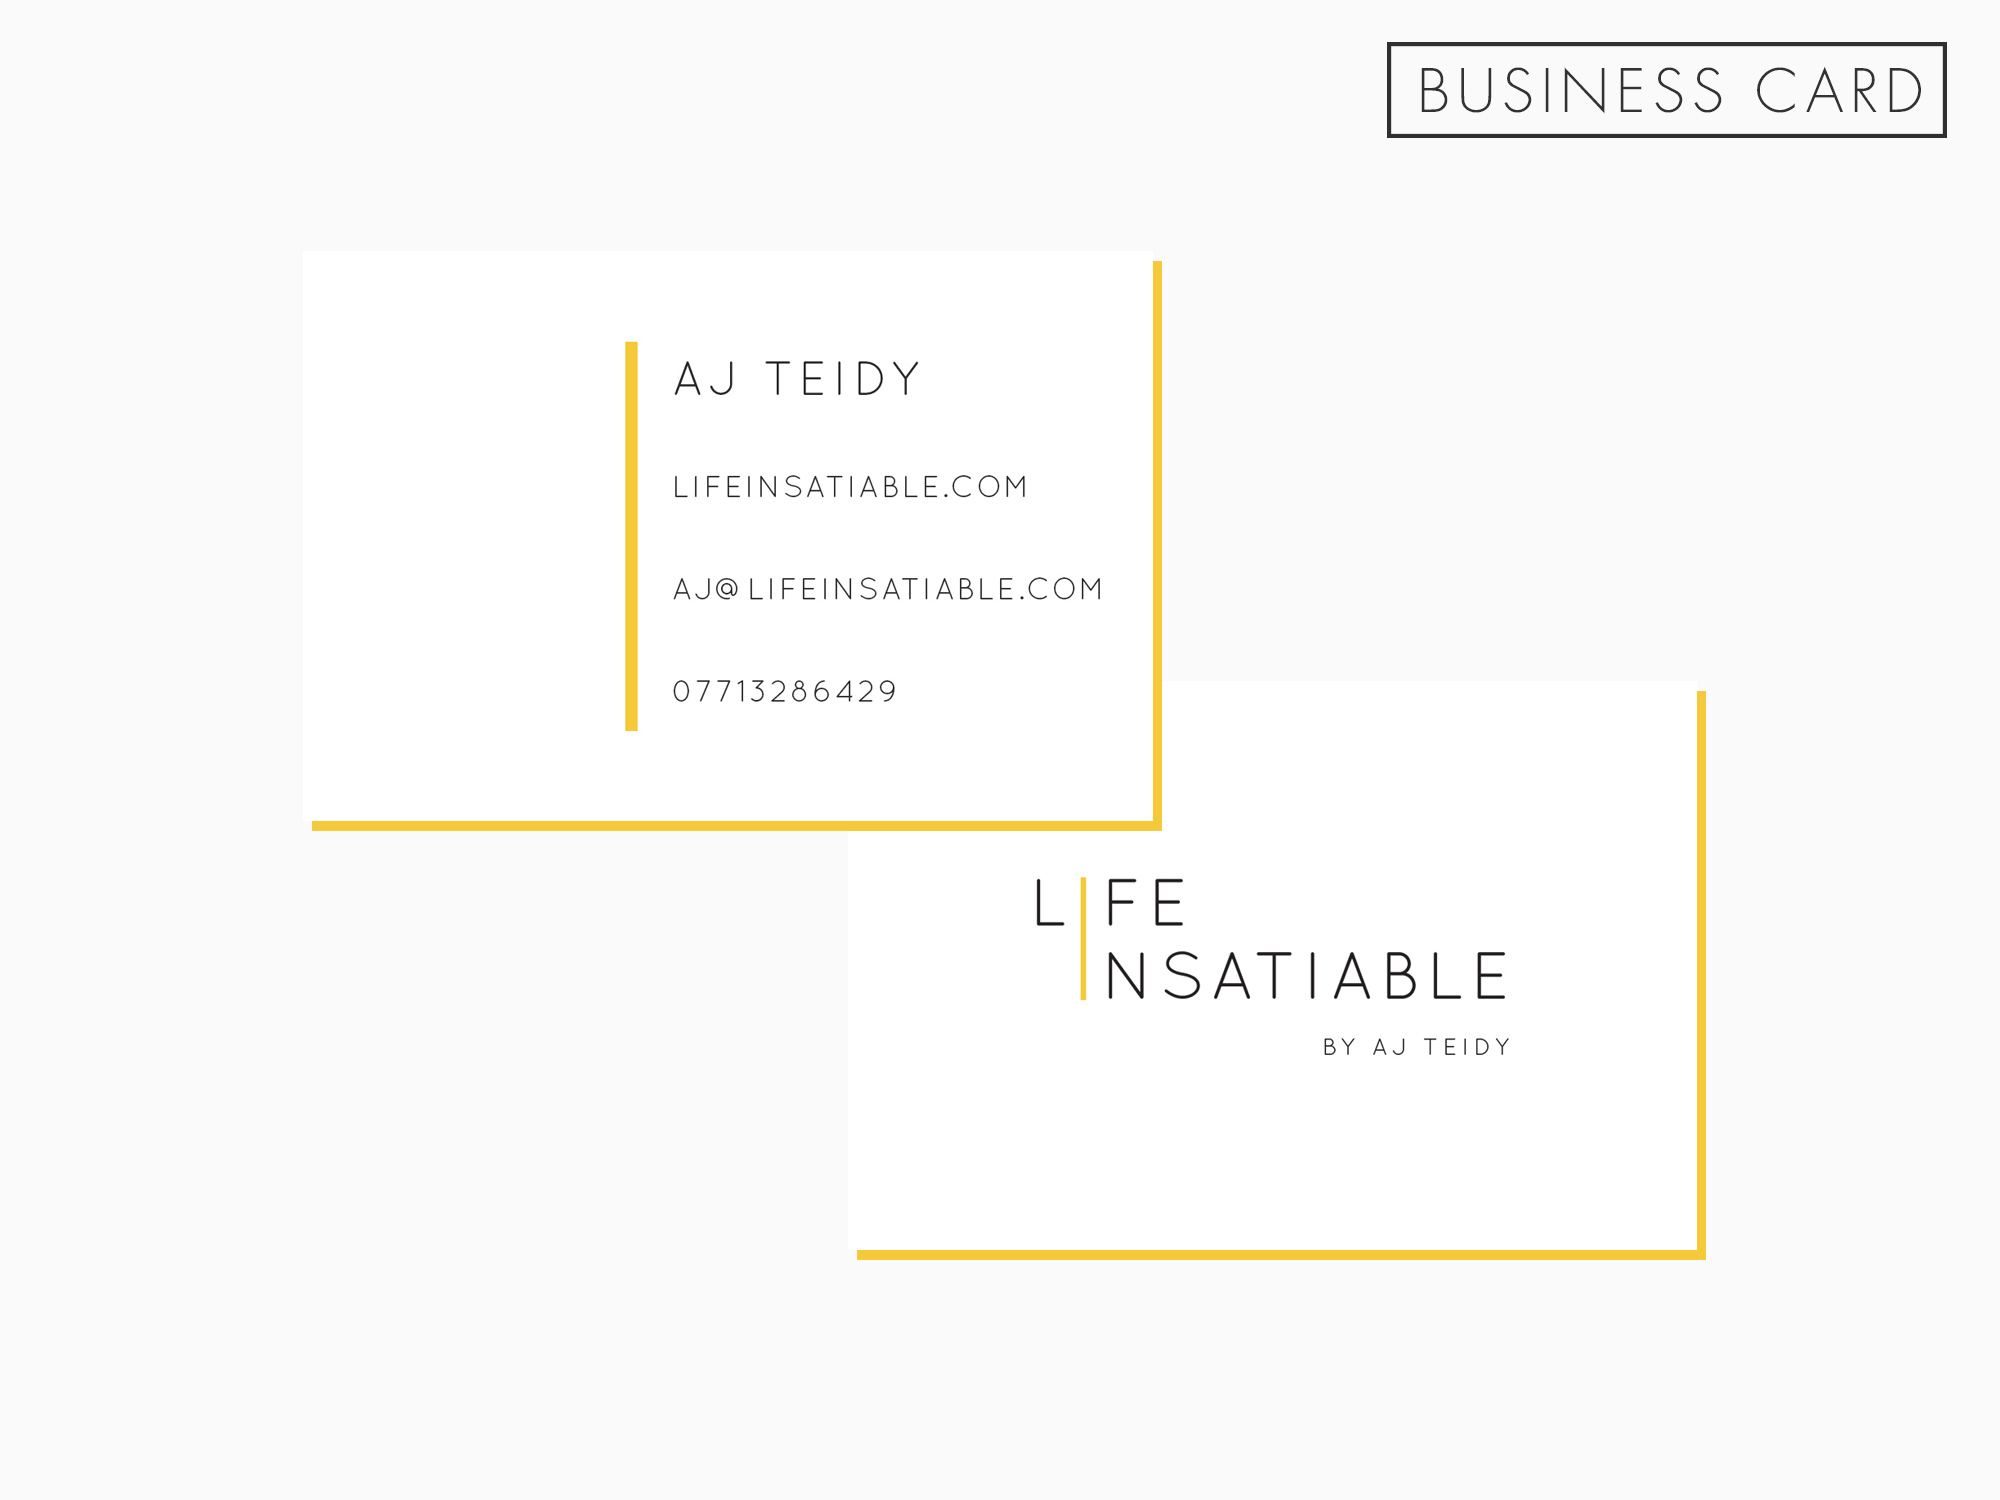 Life-Insatiable-Business-Card-Mockup.jpg